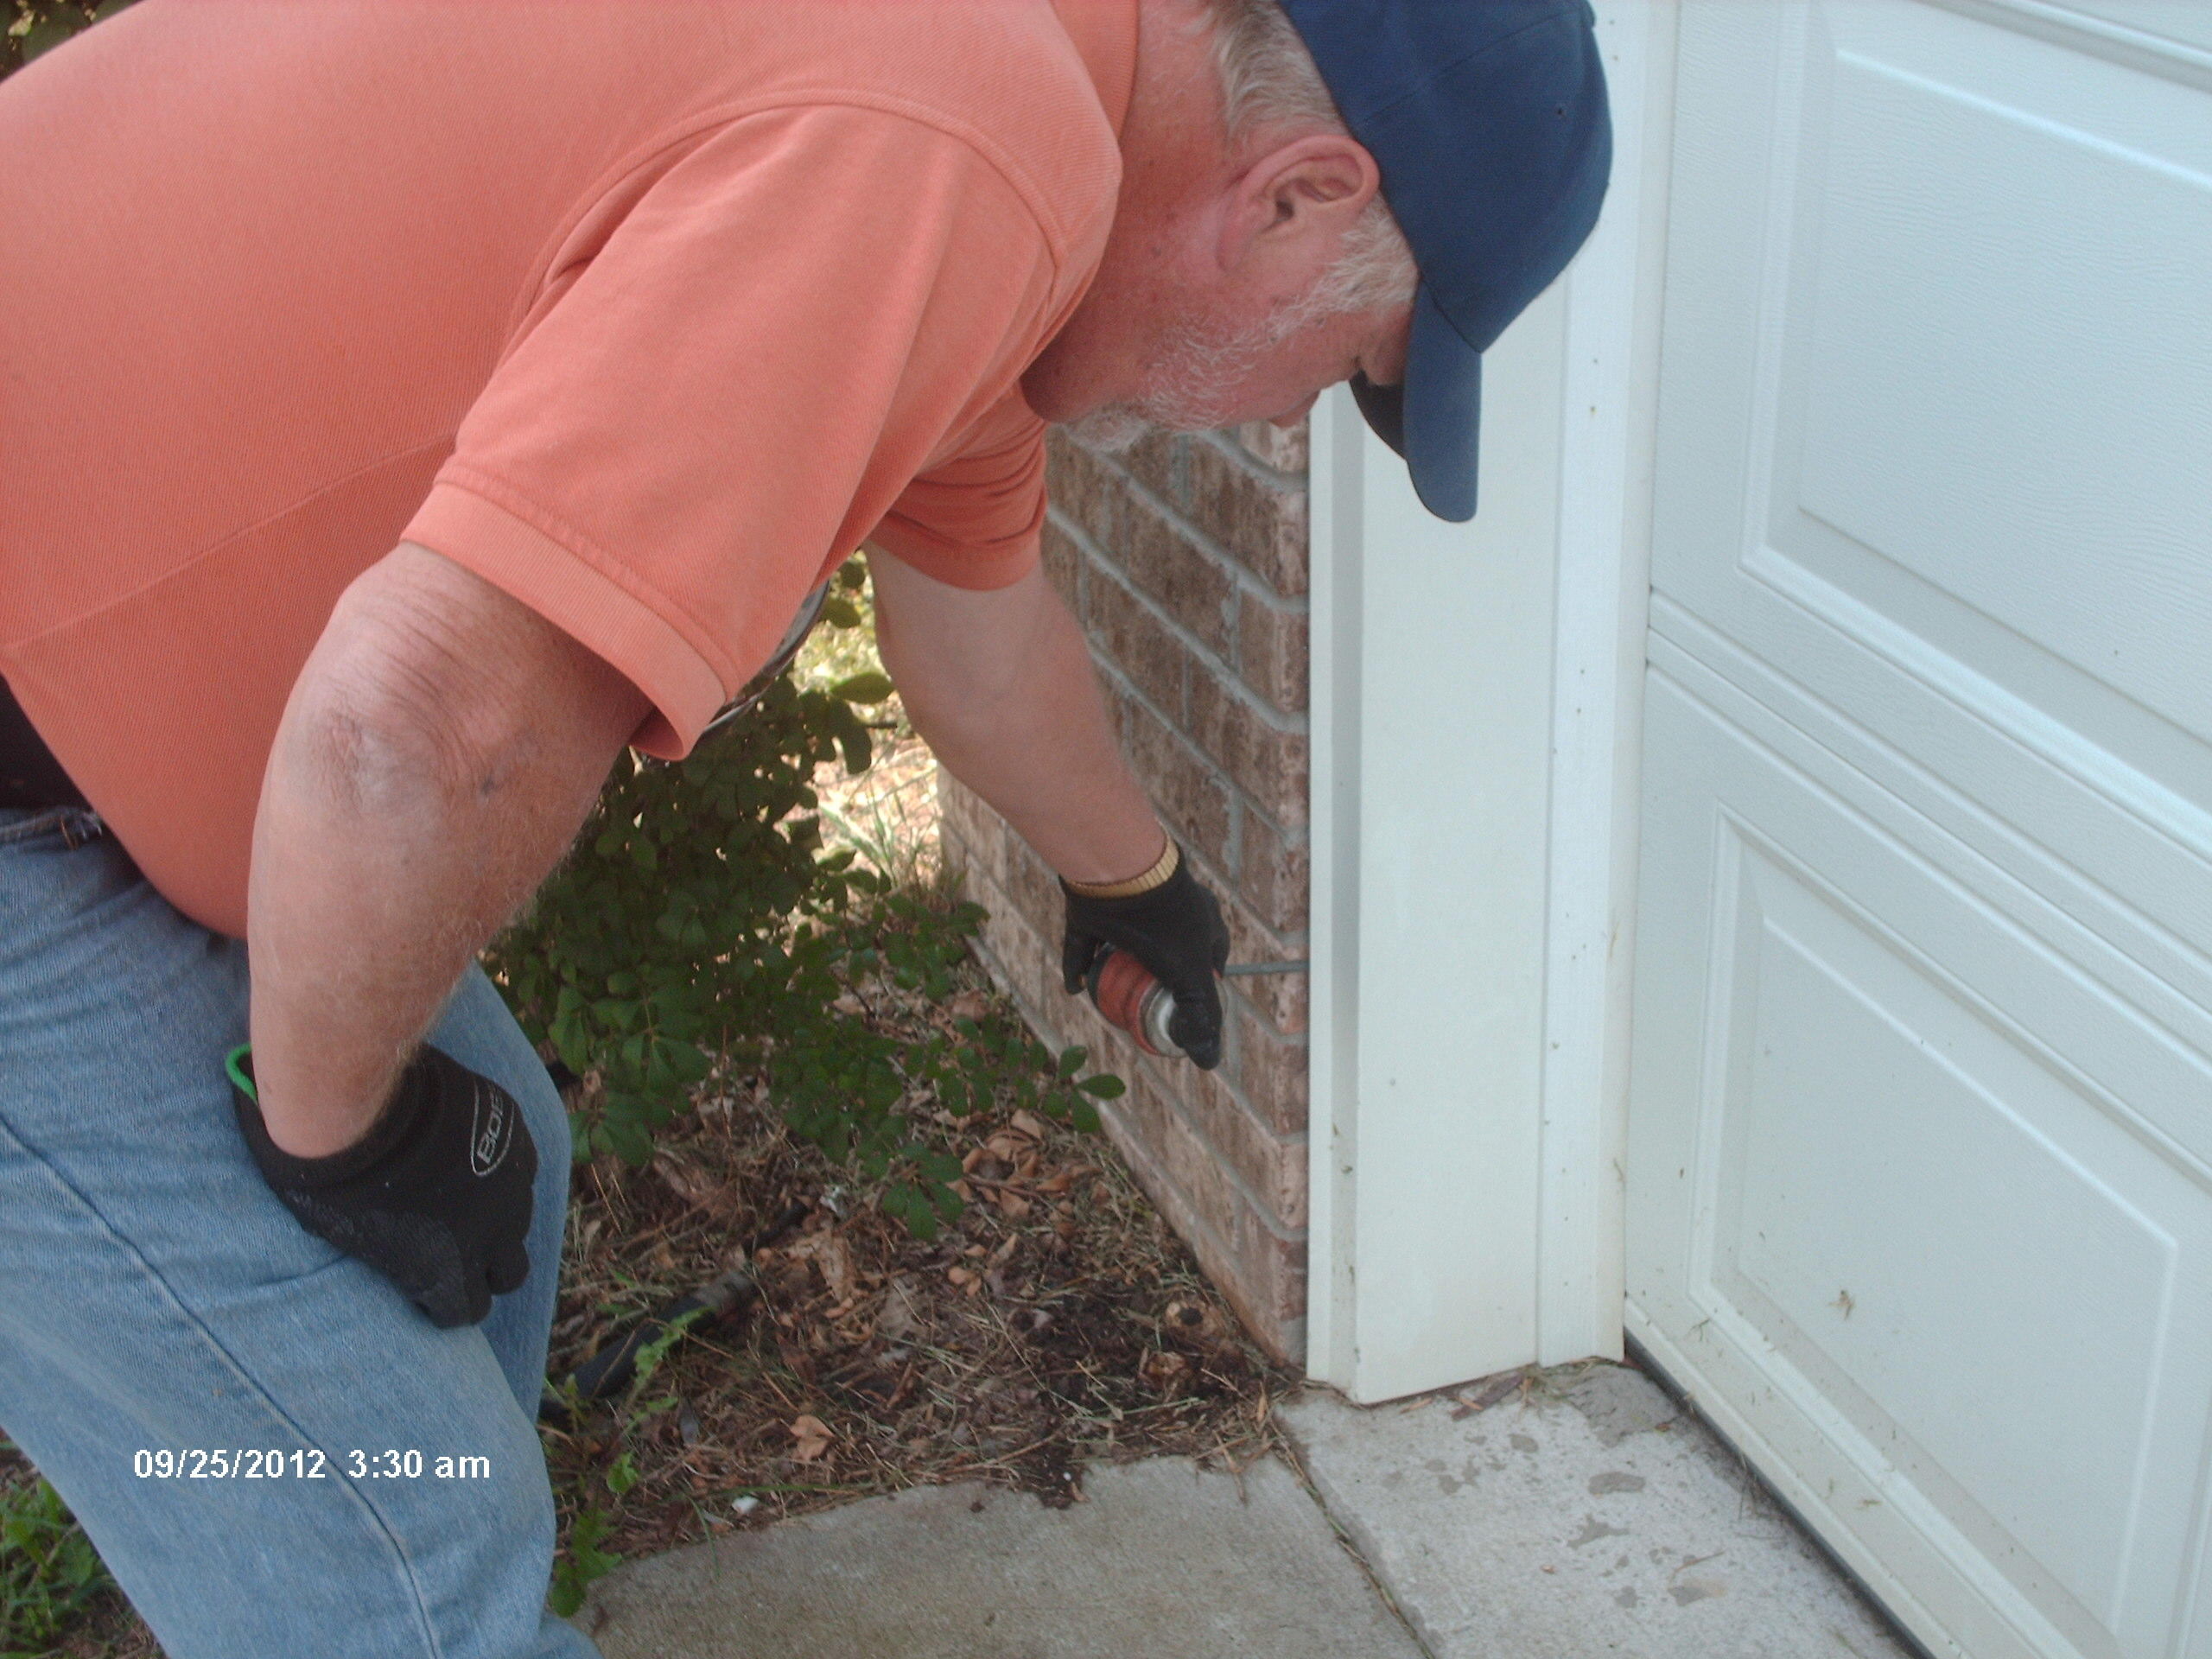 Pest Control Service in TN Nashville 37207 Tennessee Valley Exterminating 3807 Dickerson Pike  (615)240-7342